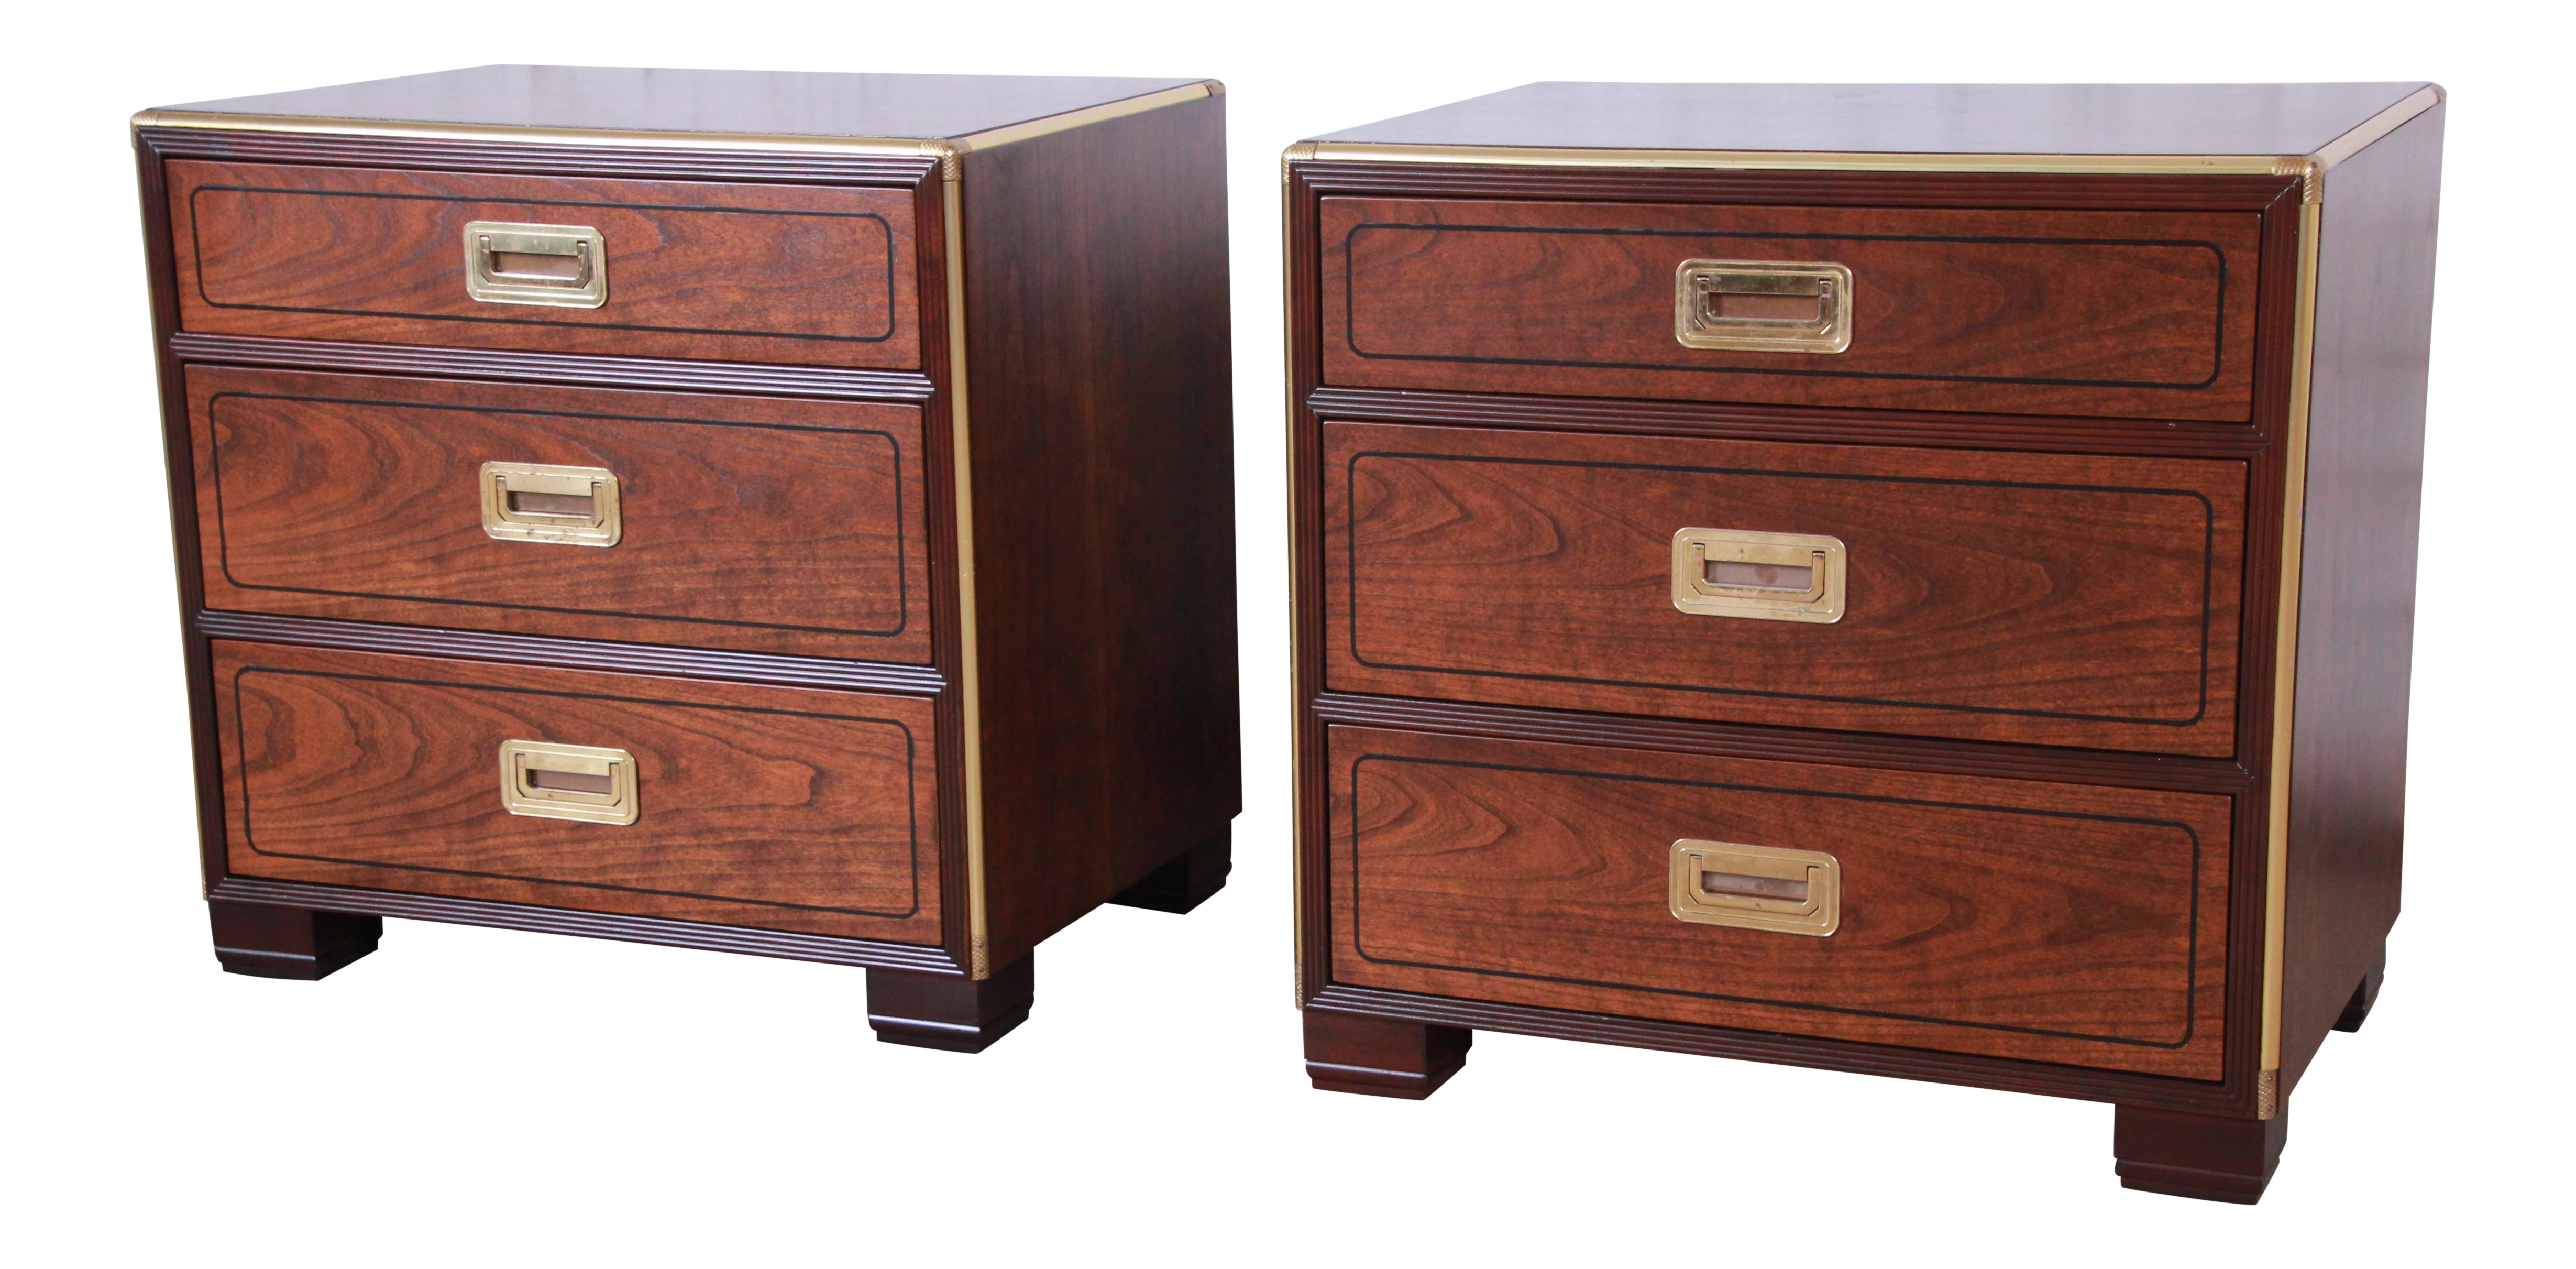 Baker furniture hollywood regency walnut and brass campaign style nightstands pair chairish